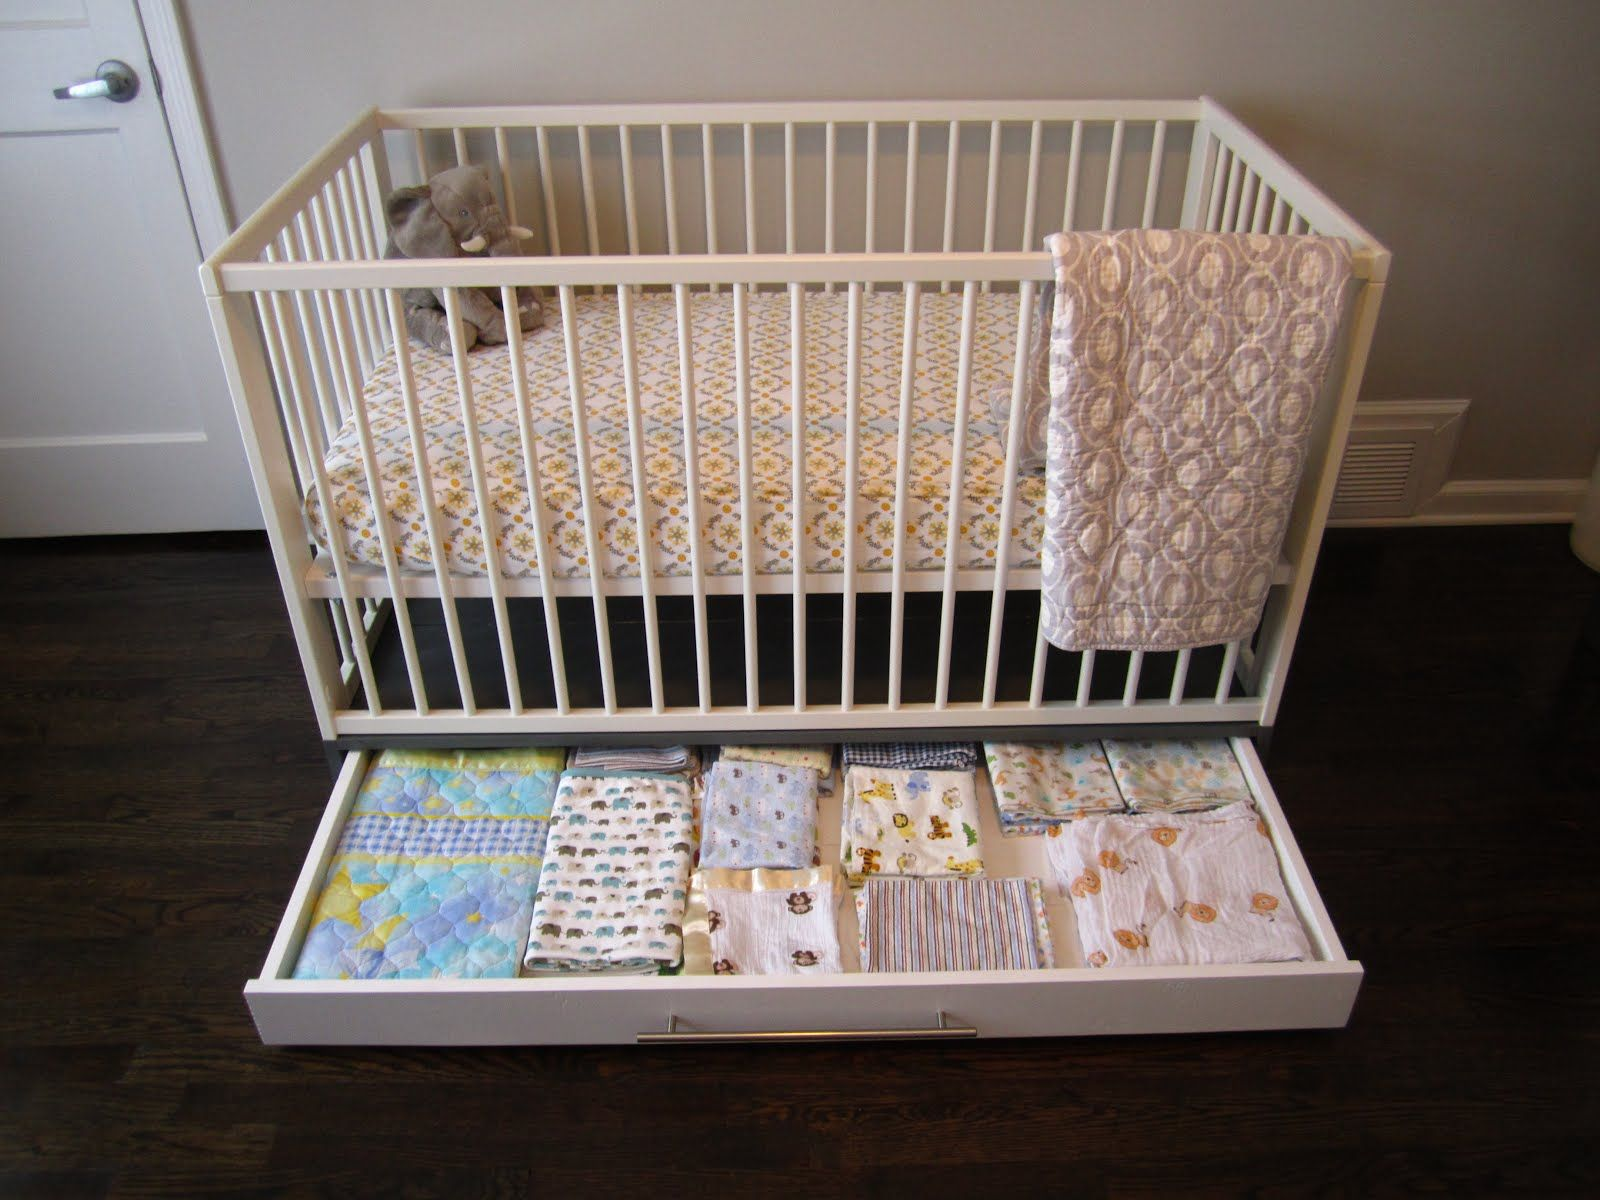 image of baby cribs ikea: designs, materials, and features